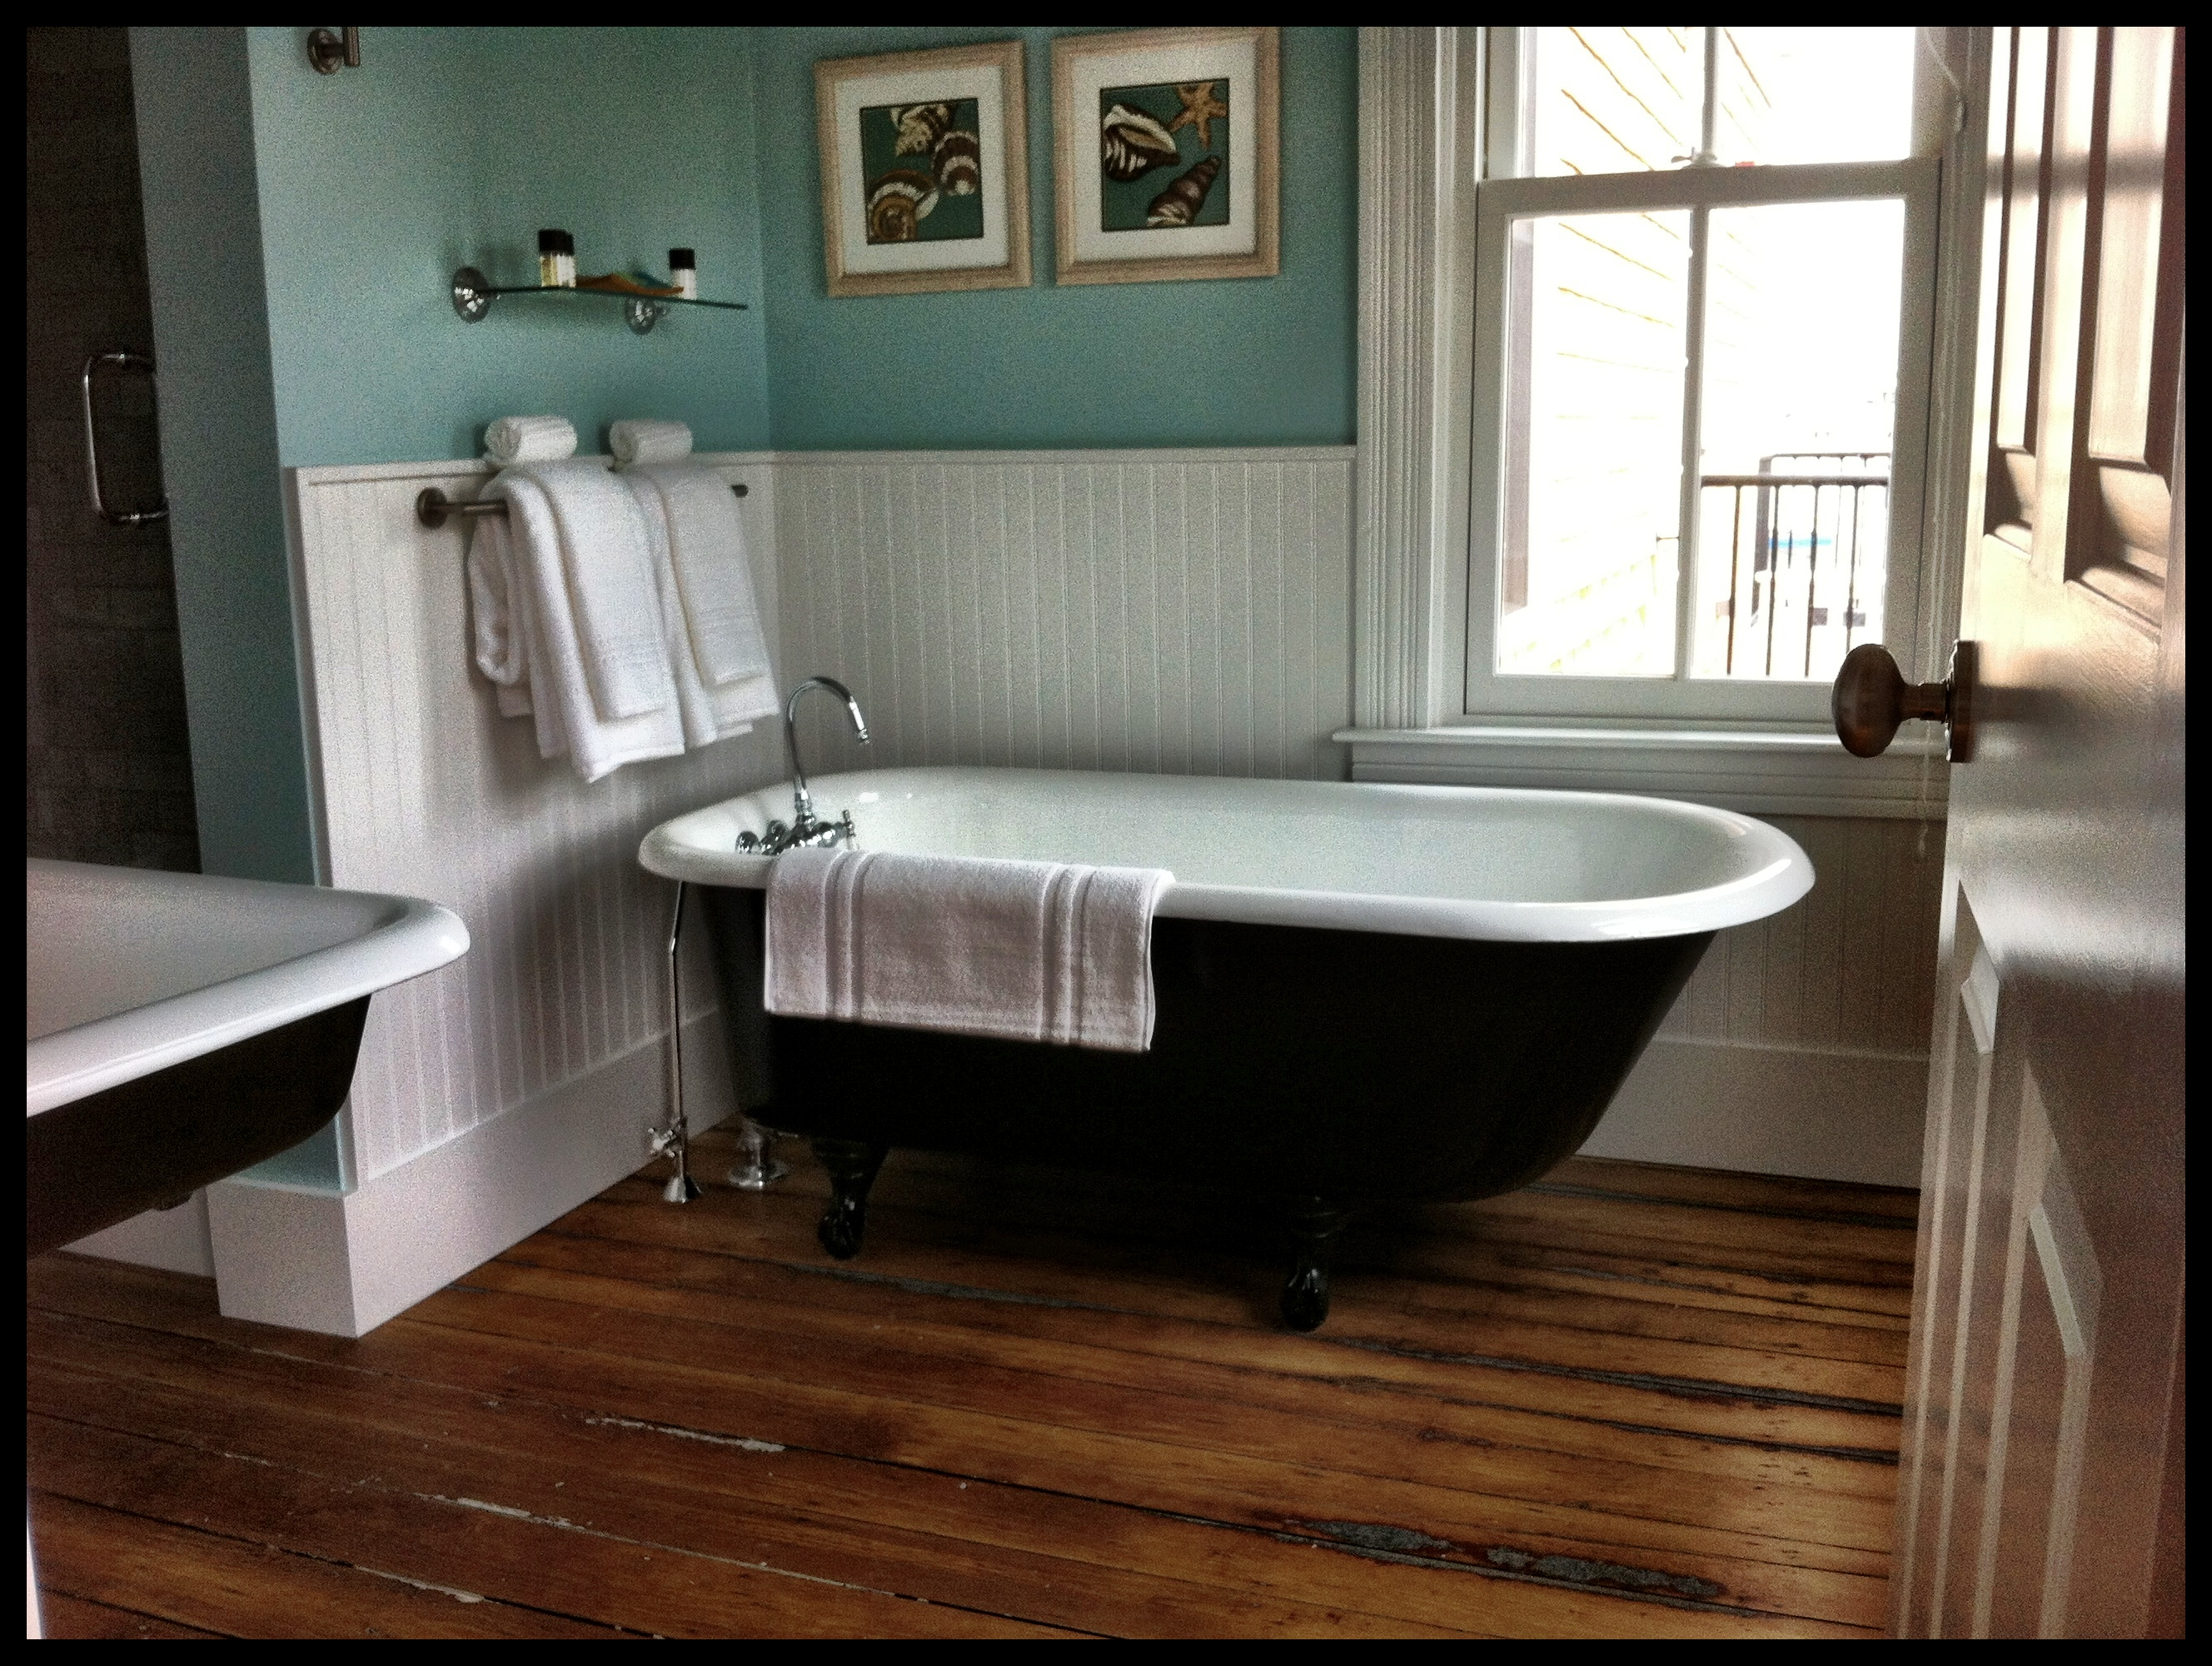 The ultimate Cape Cod bathtub, at the Woods Hole Inn.